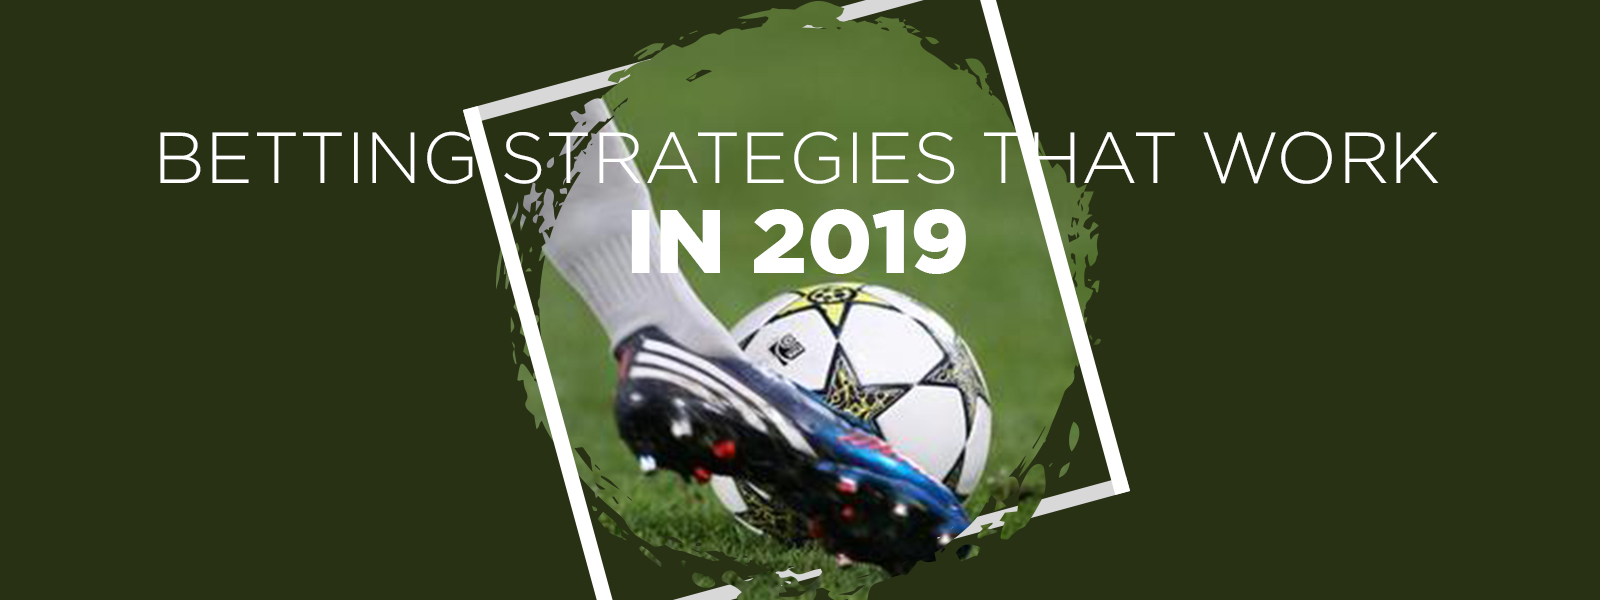 Betting Strategies That Worked In 2019